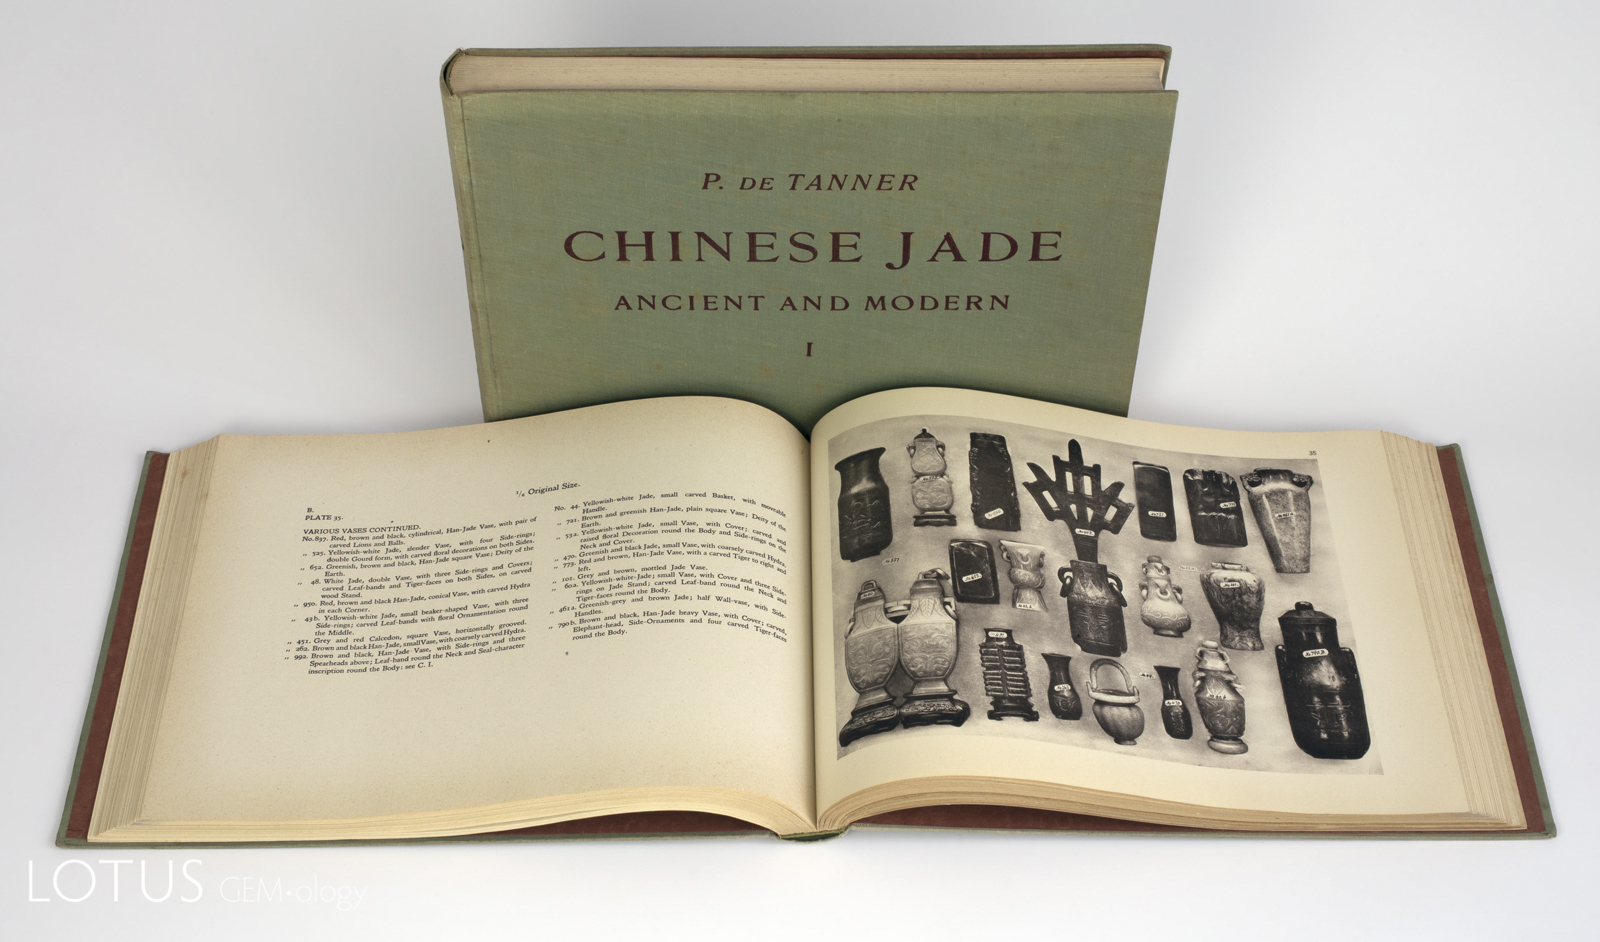 The two-volume 1925 de Tanner set, Chinese Jade: Ancient and Modern, is one of the most collectable books on jade